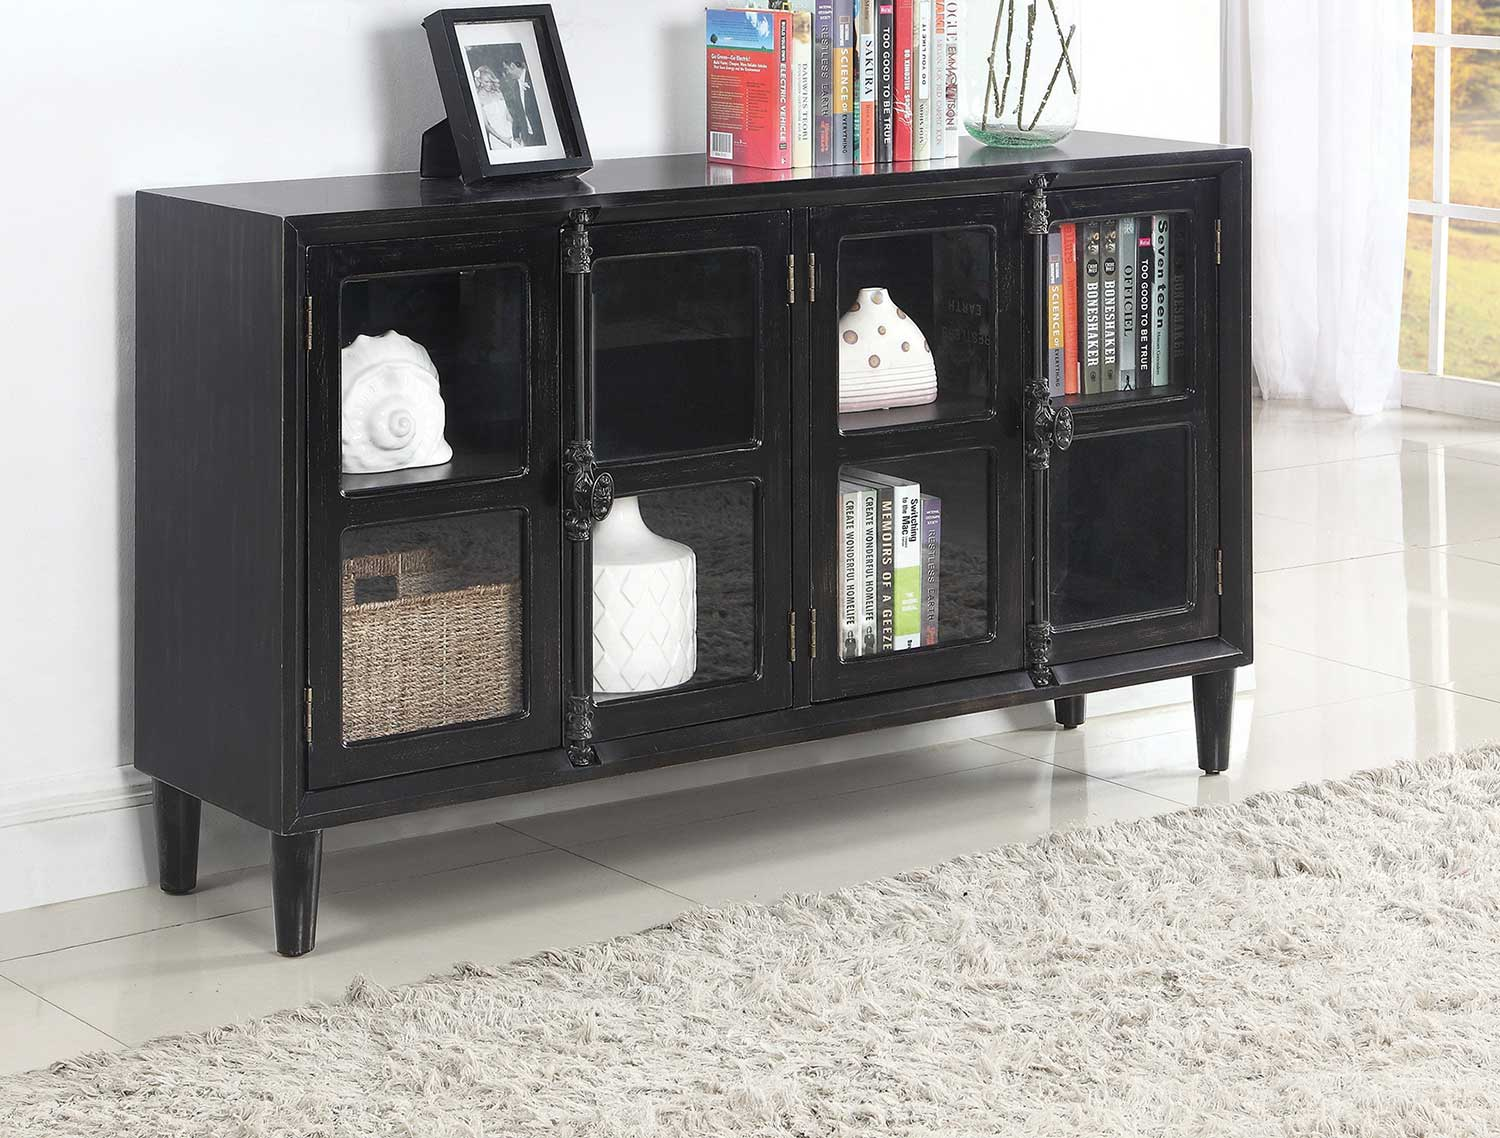 Coaster 950780 Accent Cabinet - Black